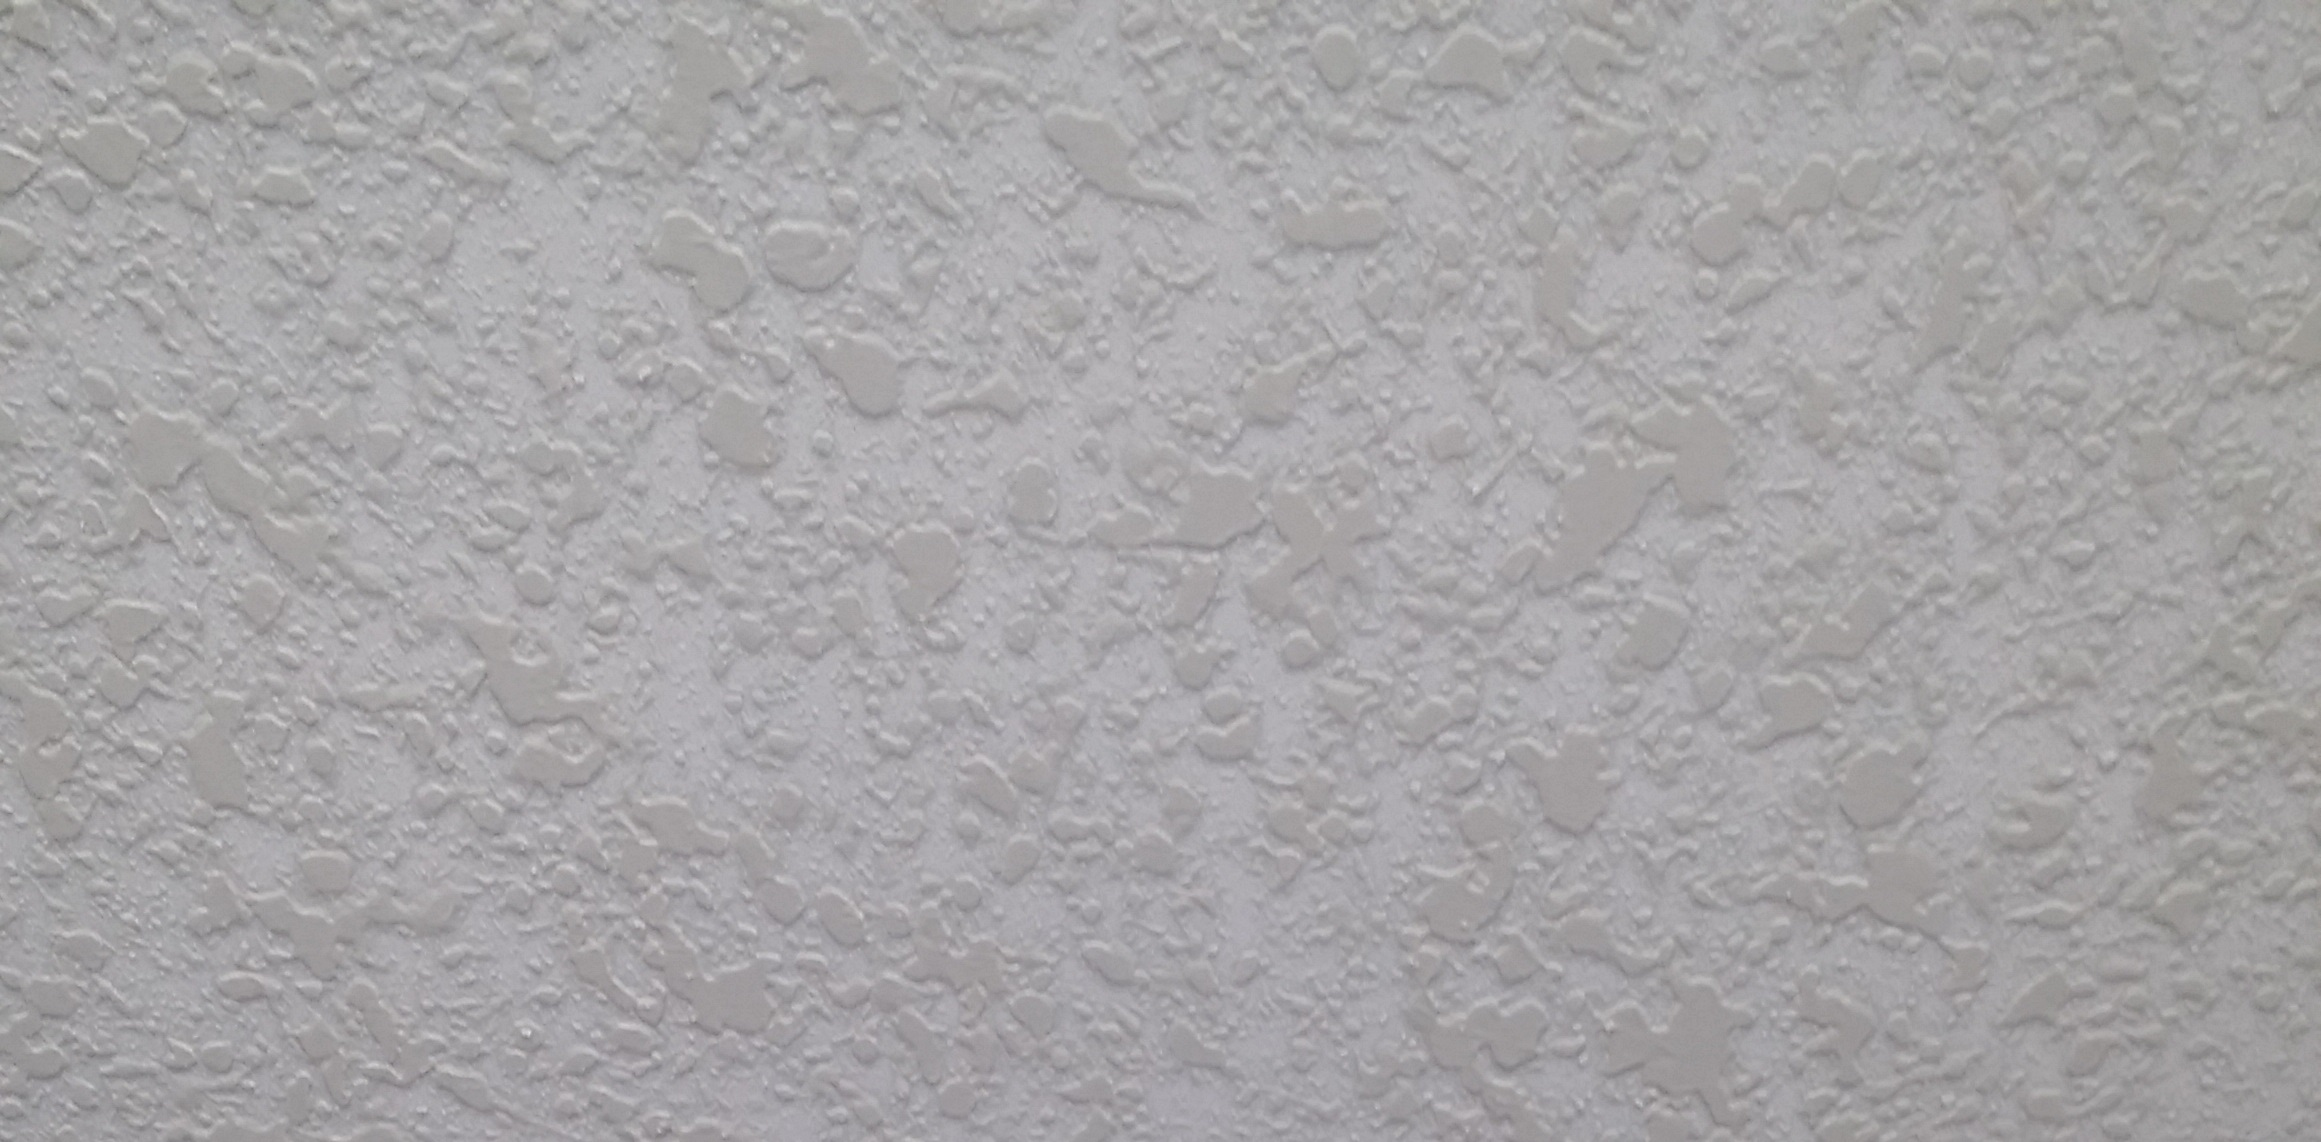 Knockdown Textured Ceiling Texture King Calgary Ceiling Texture Company With A Difference